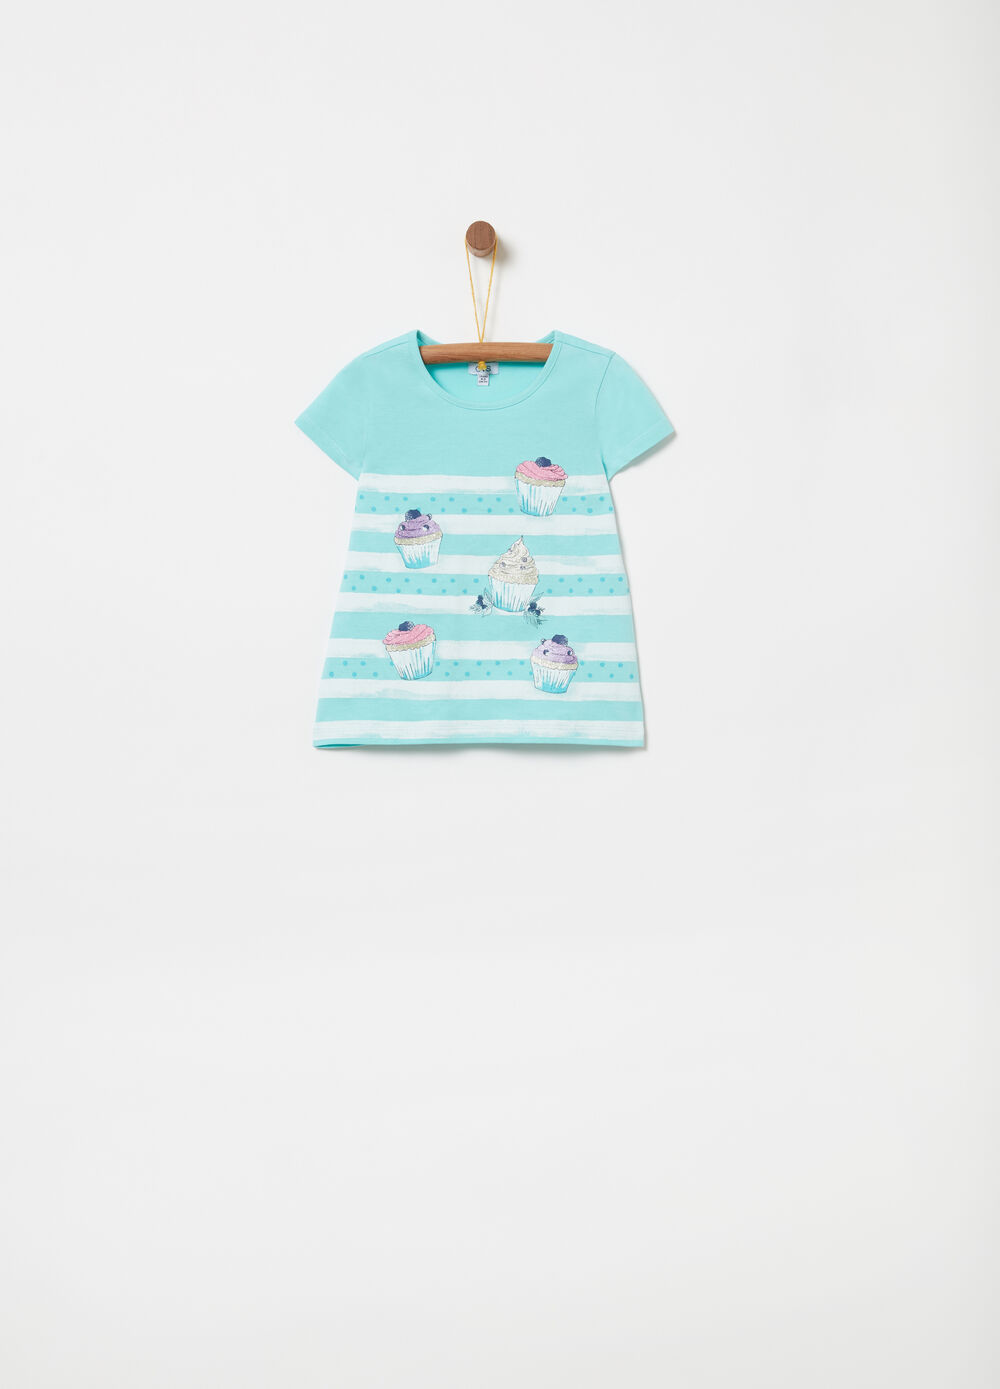 100% cotton T-shirt with glitter and print